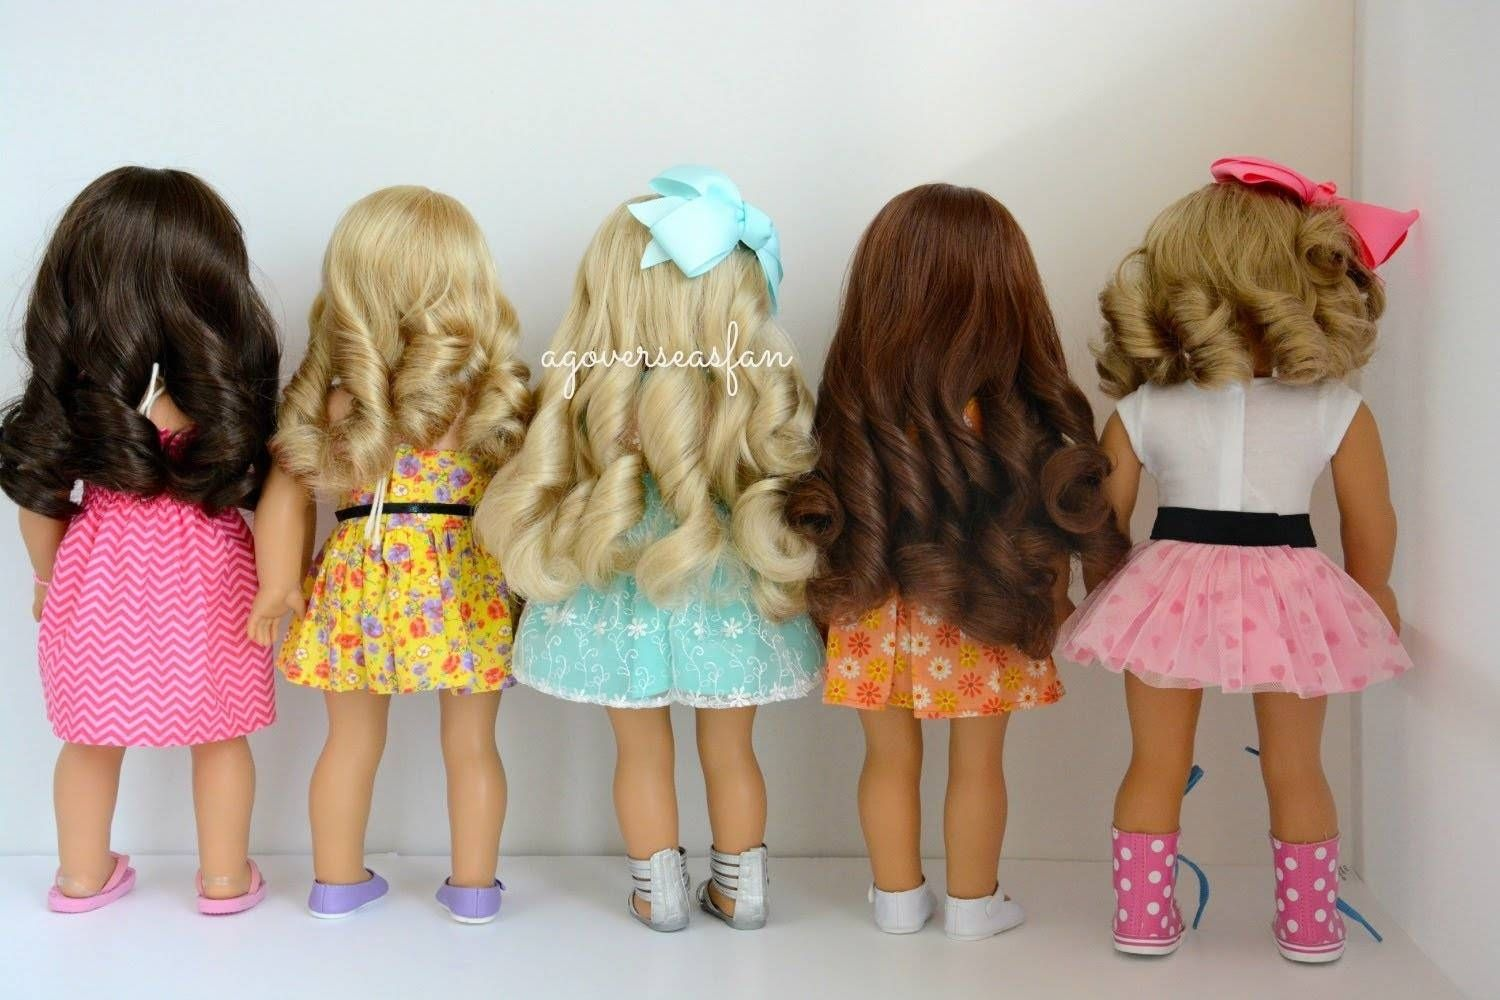 Best Dolls With Long Hair To Style American Girl Doll Hairstyles American Girl Hairstyles American Girl Doll Accessories